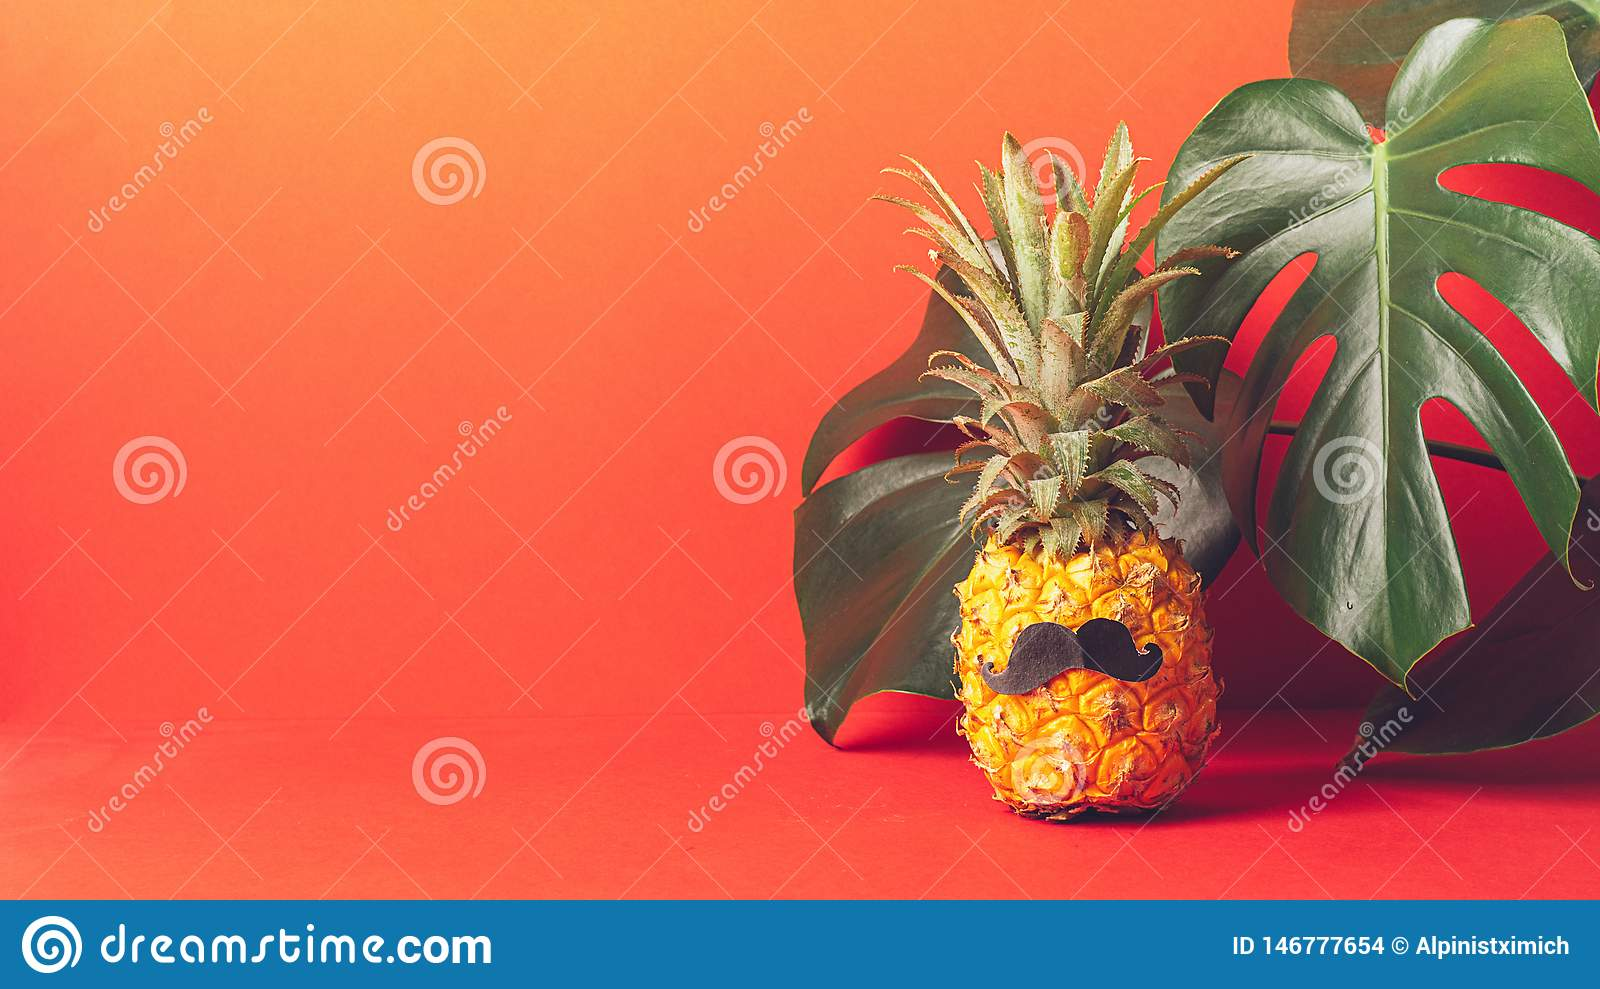 Ripe pineapple with a black mustache on a red background, with large green leaves of the plant. Funny face from food.